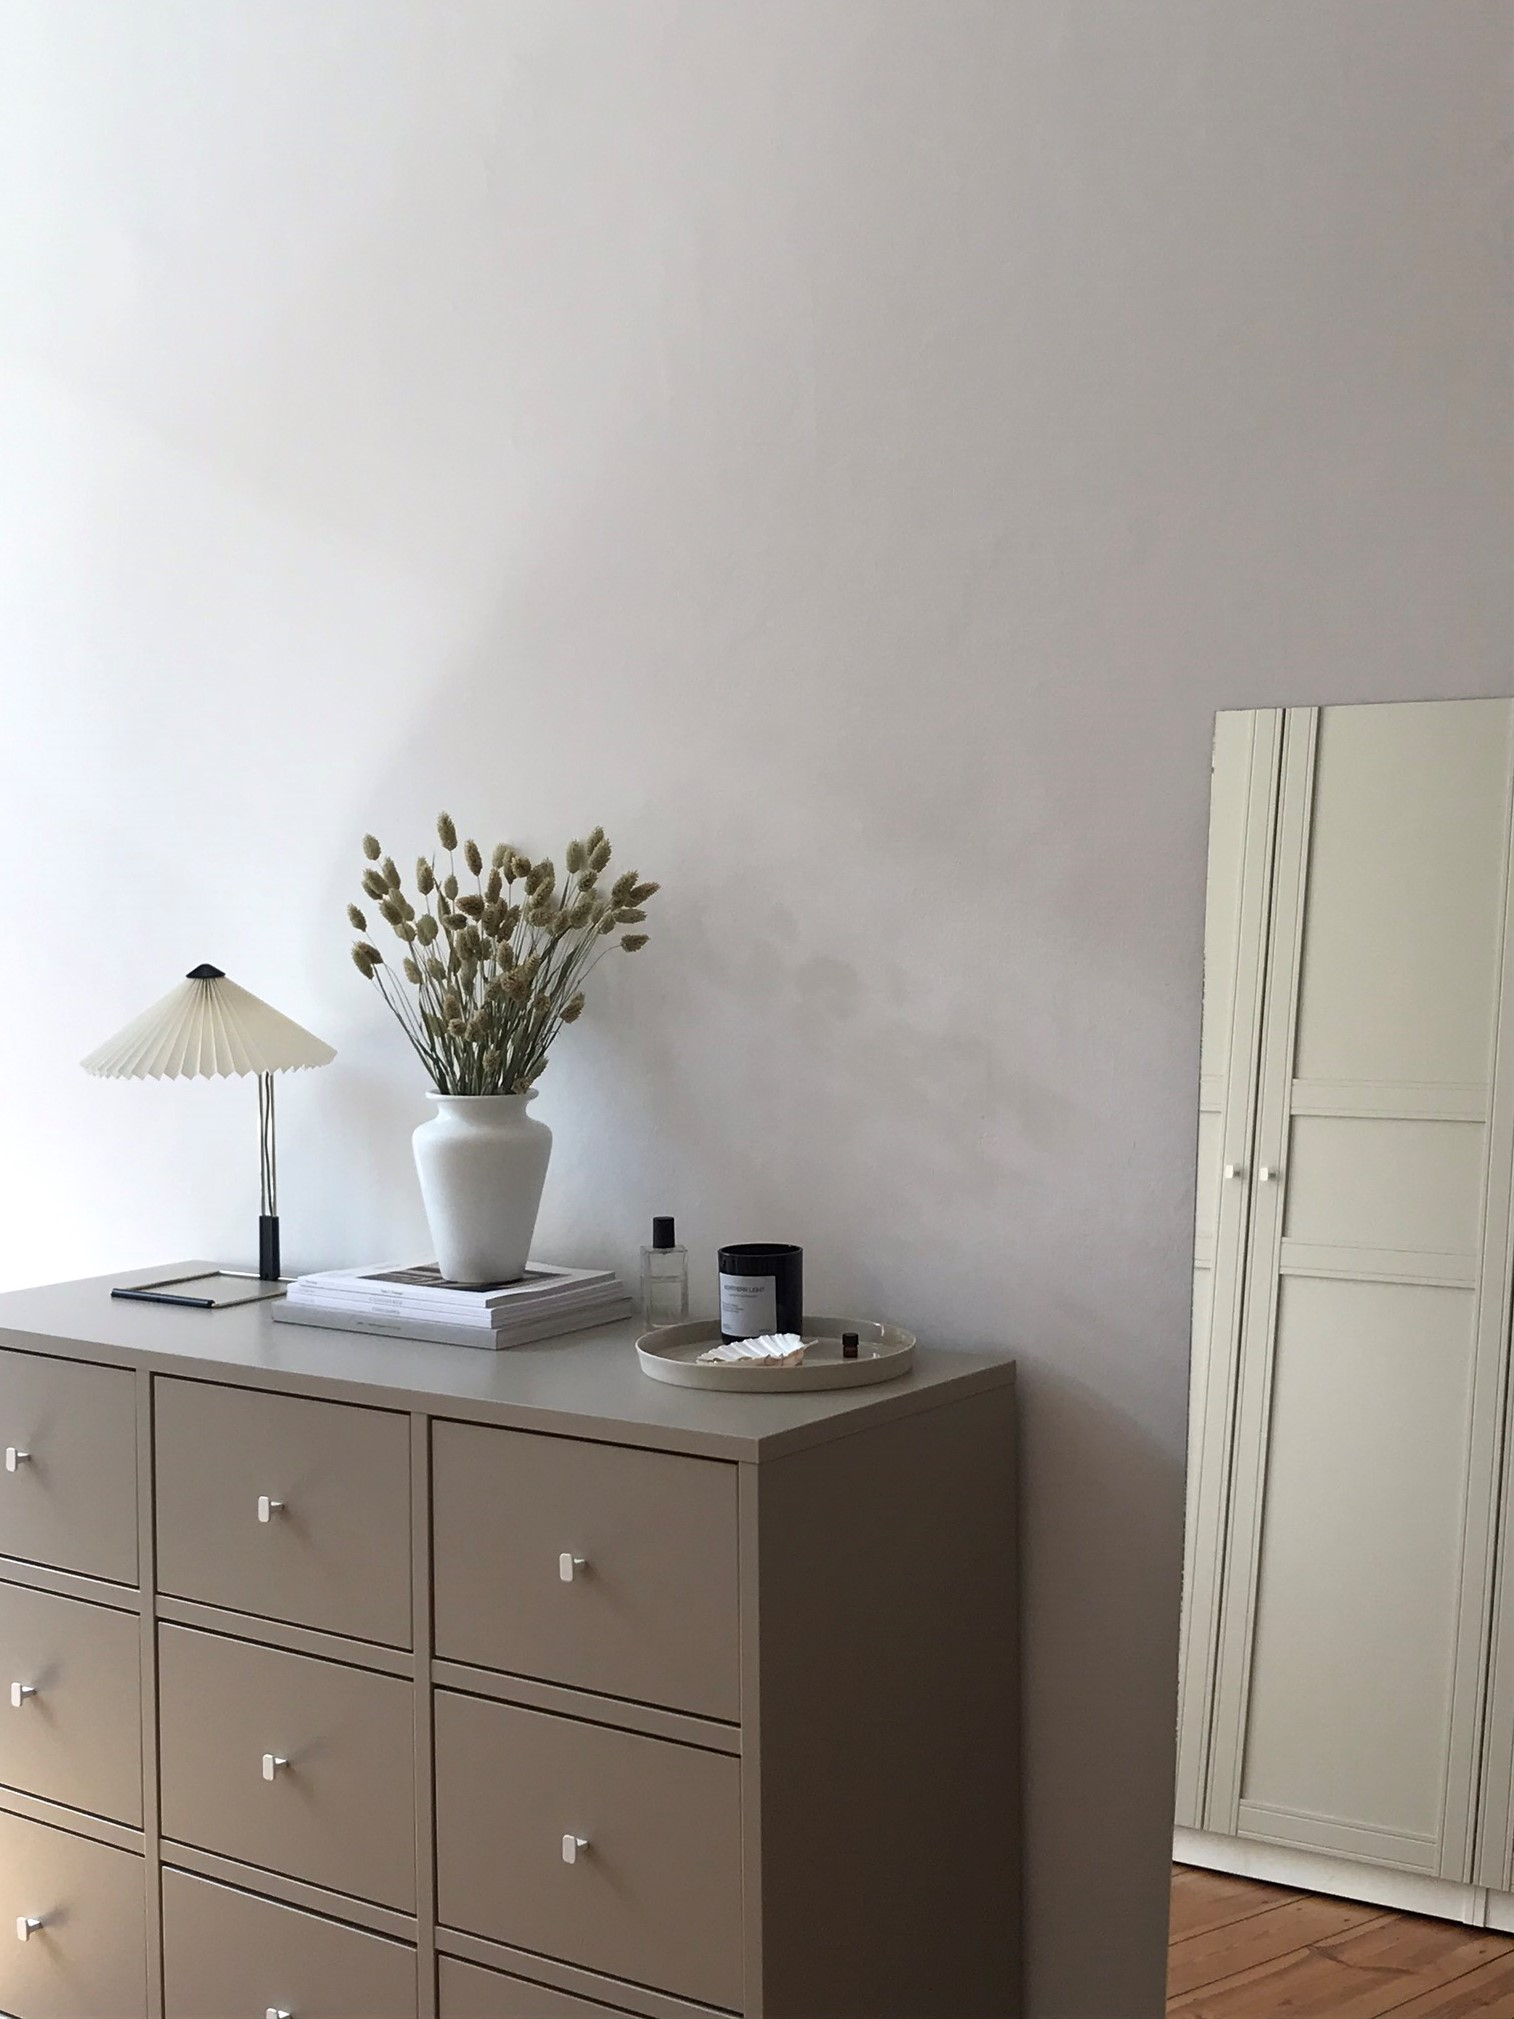 Hay Matin Lamp Minimal Danish Design Aesthetic Slow Living Simple Interior Inspo Neutral Colors Tones Beige Storage Dried Flowers Home Inspiration Rg Daily Blog Mirror Bedroom Decor Rg Daily